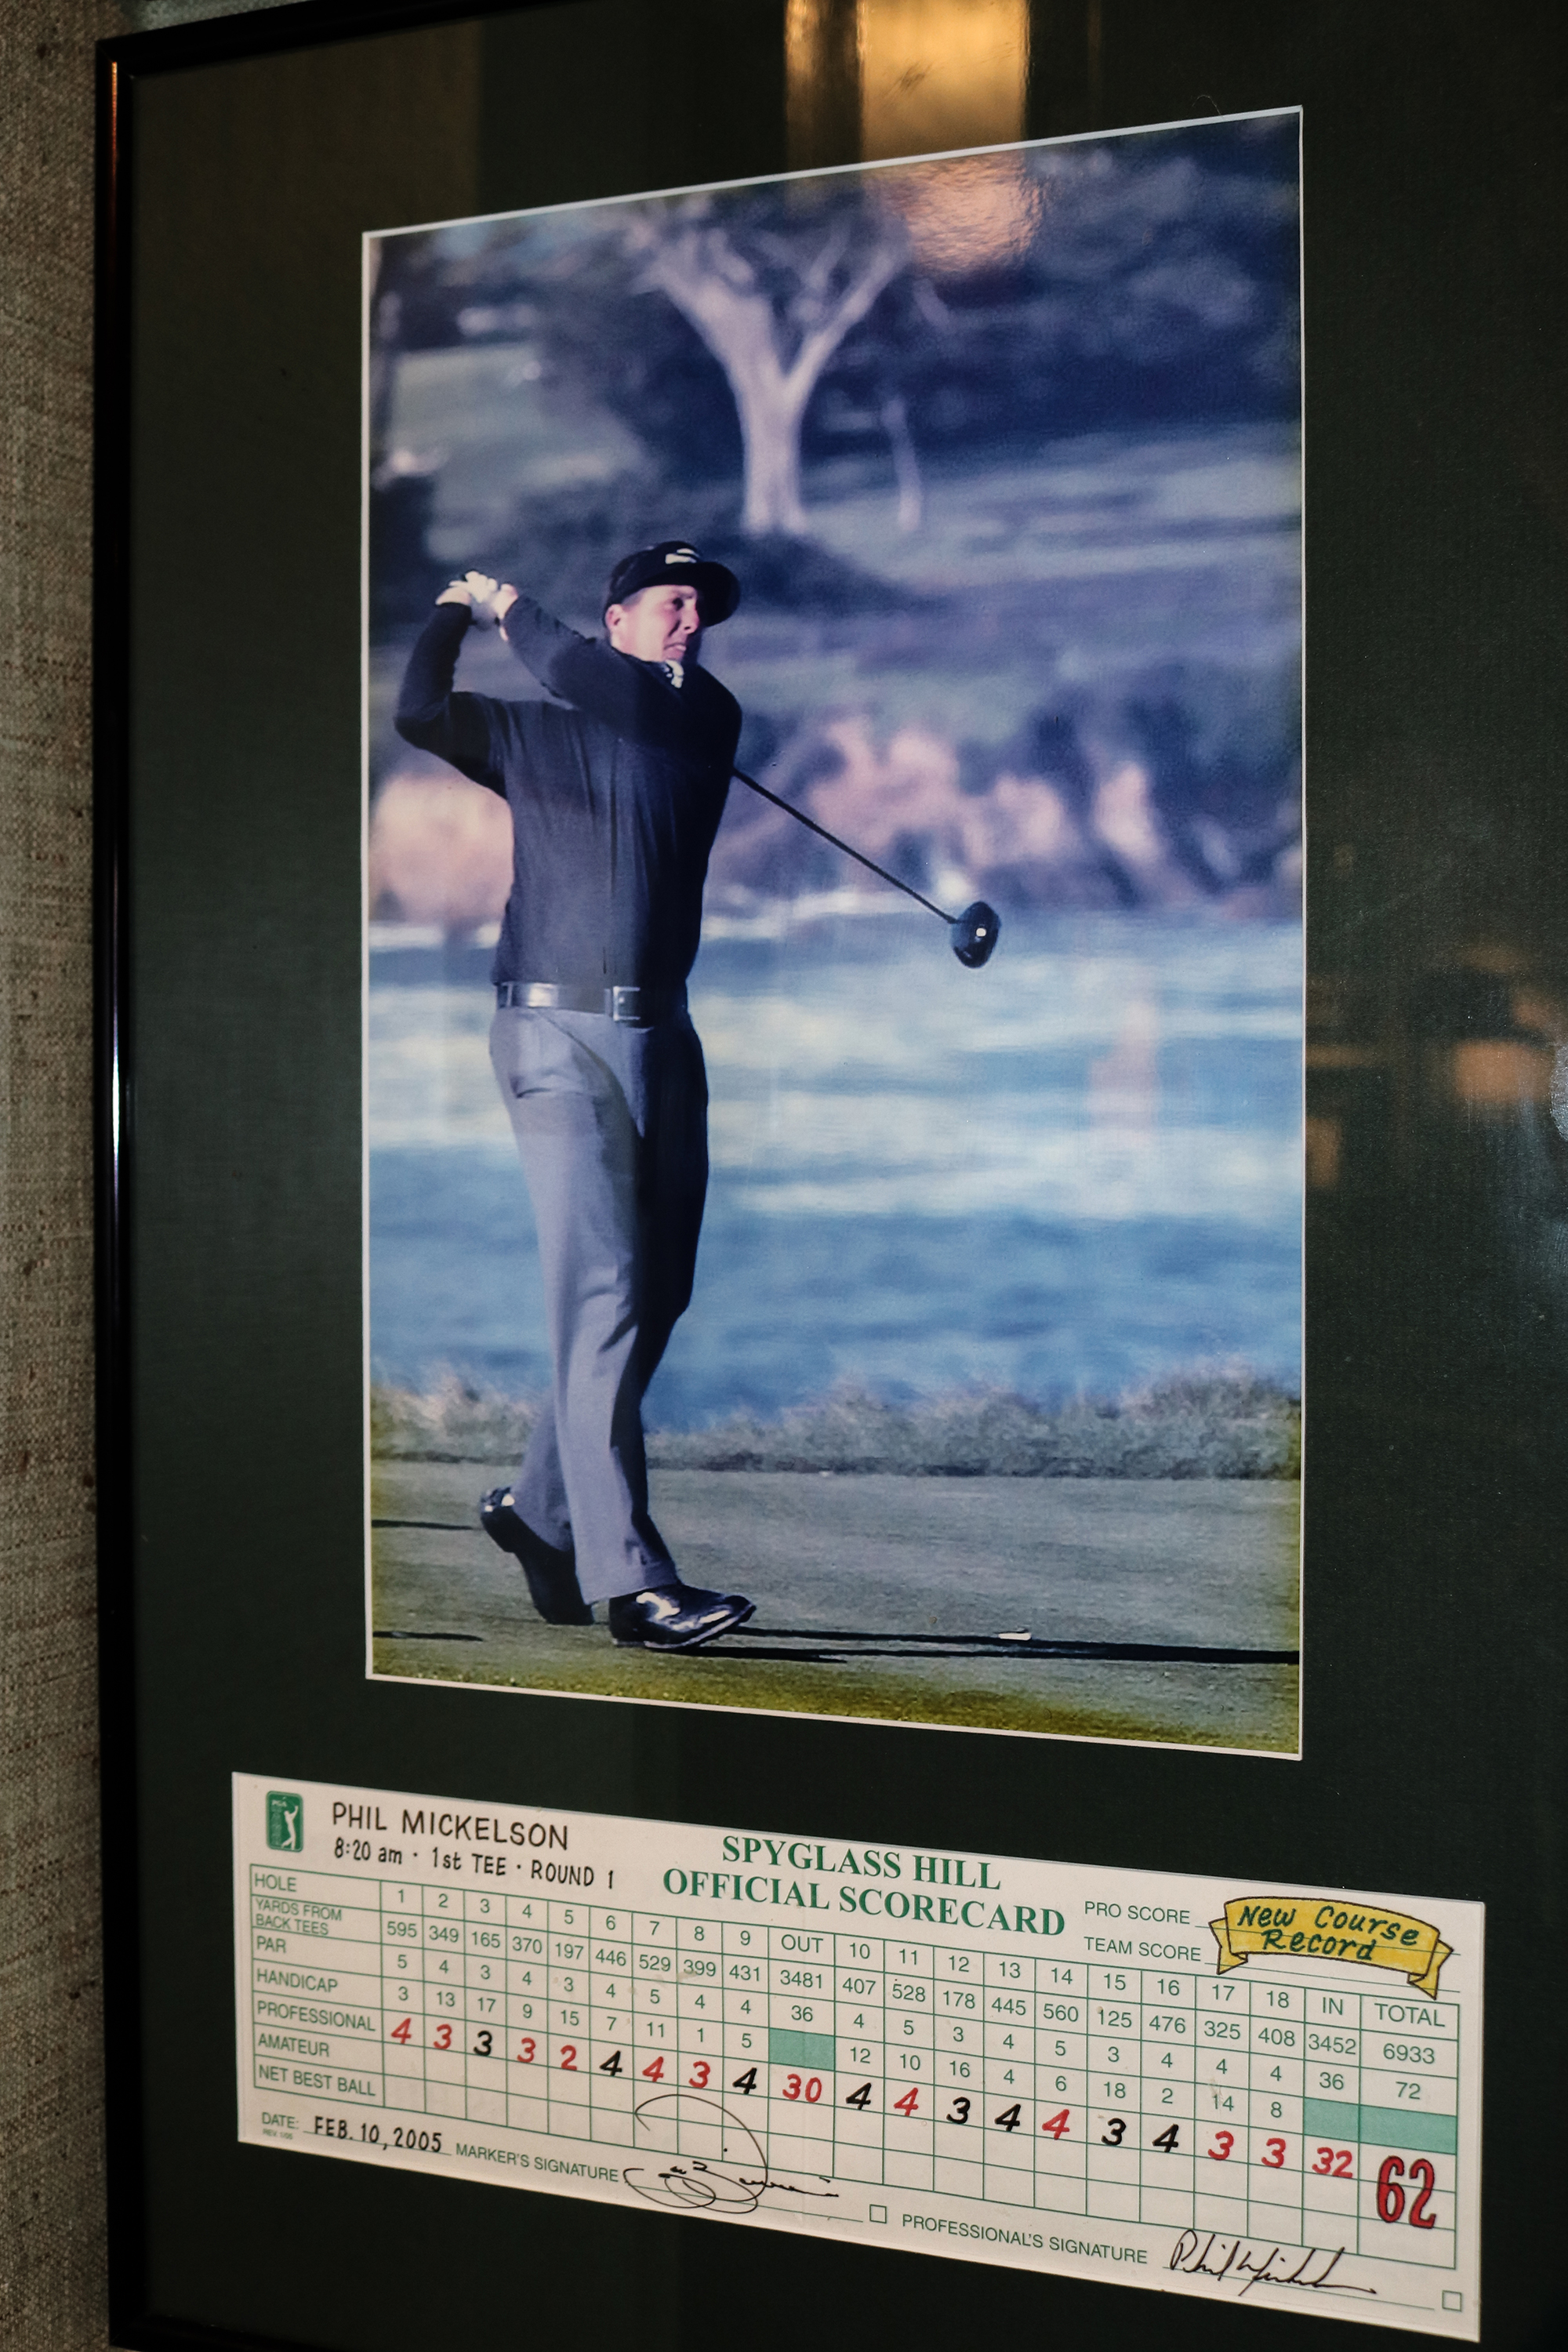 Phil Mickelson Course Record Spyglass Hill